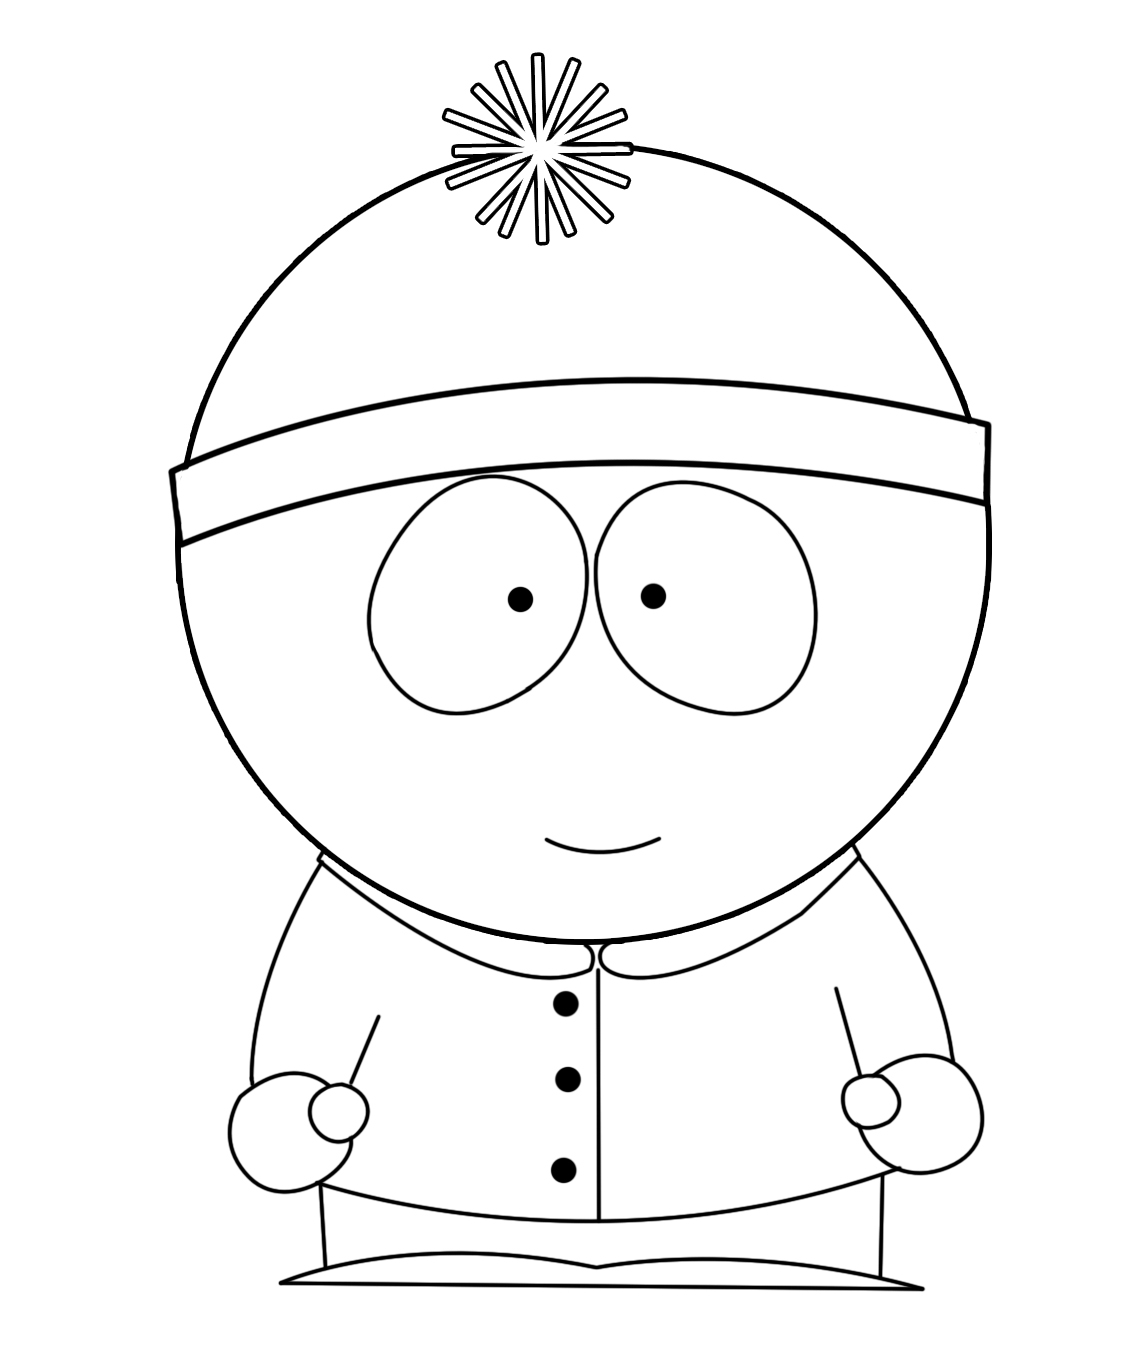 How to Draw Stan from South Park: 9 Steps (with Pictures)